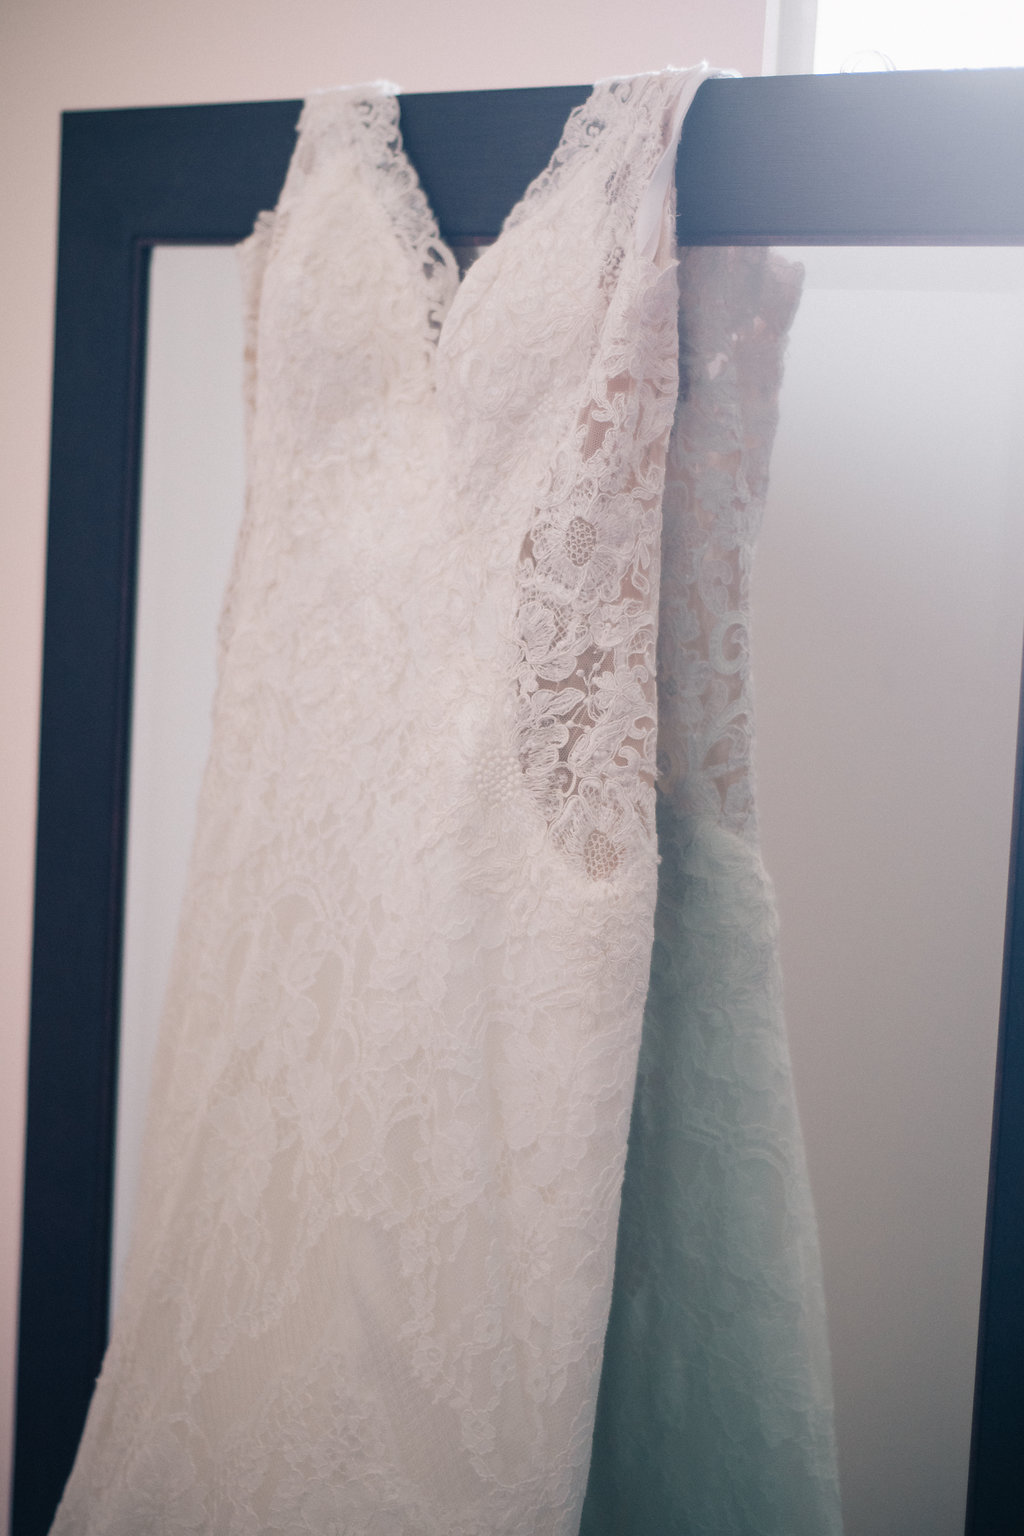 Amber-Lee's lacy mermaid gown by Allure Bridal